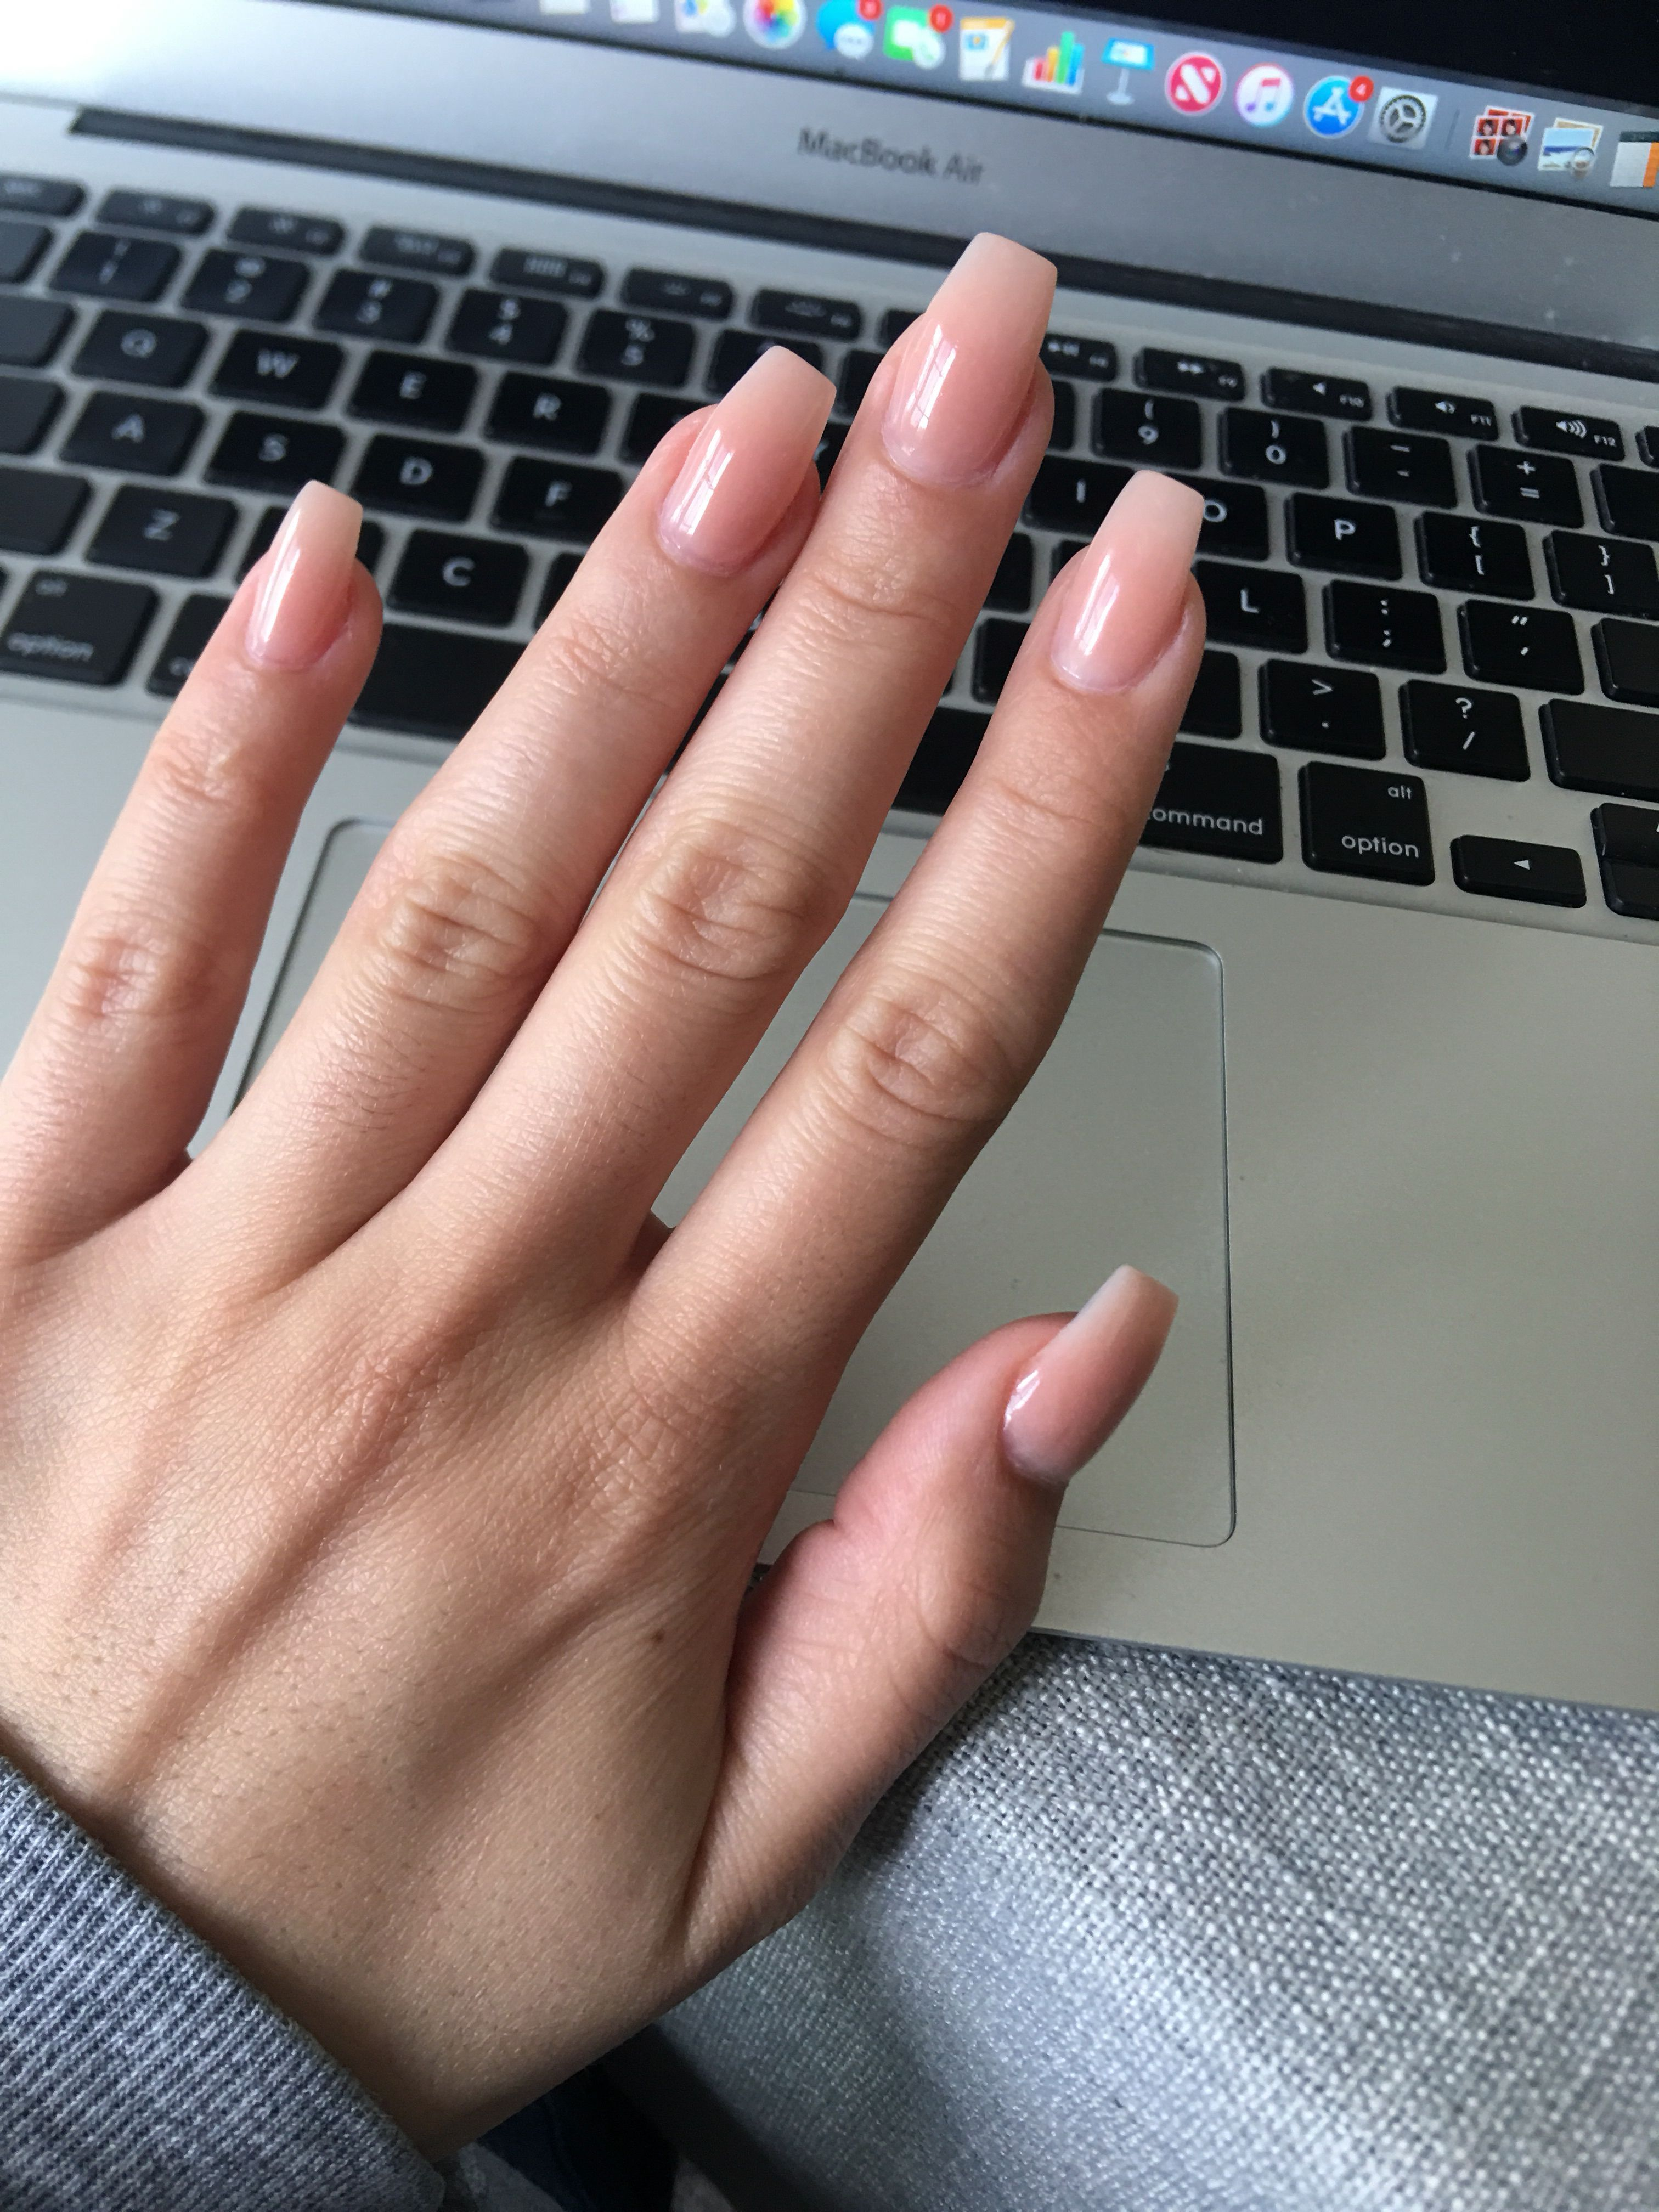 Natural Acrylic Extension Acrylic Extension On Natural Nails Soft Pink Powder Clear Gel Top Coat Na In 2020 Natural Acrylic Nails Pink Gel Nails Pink Acrylic Nails